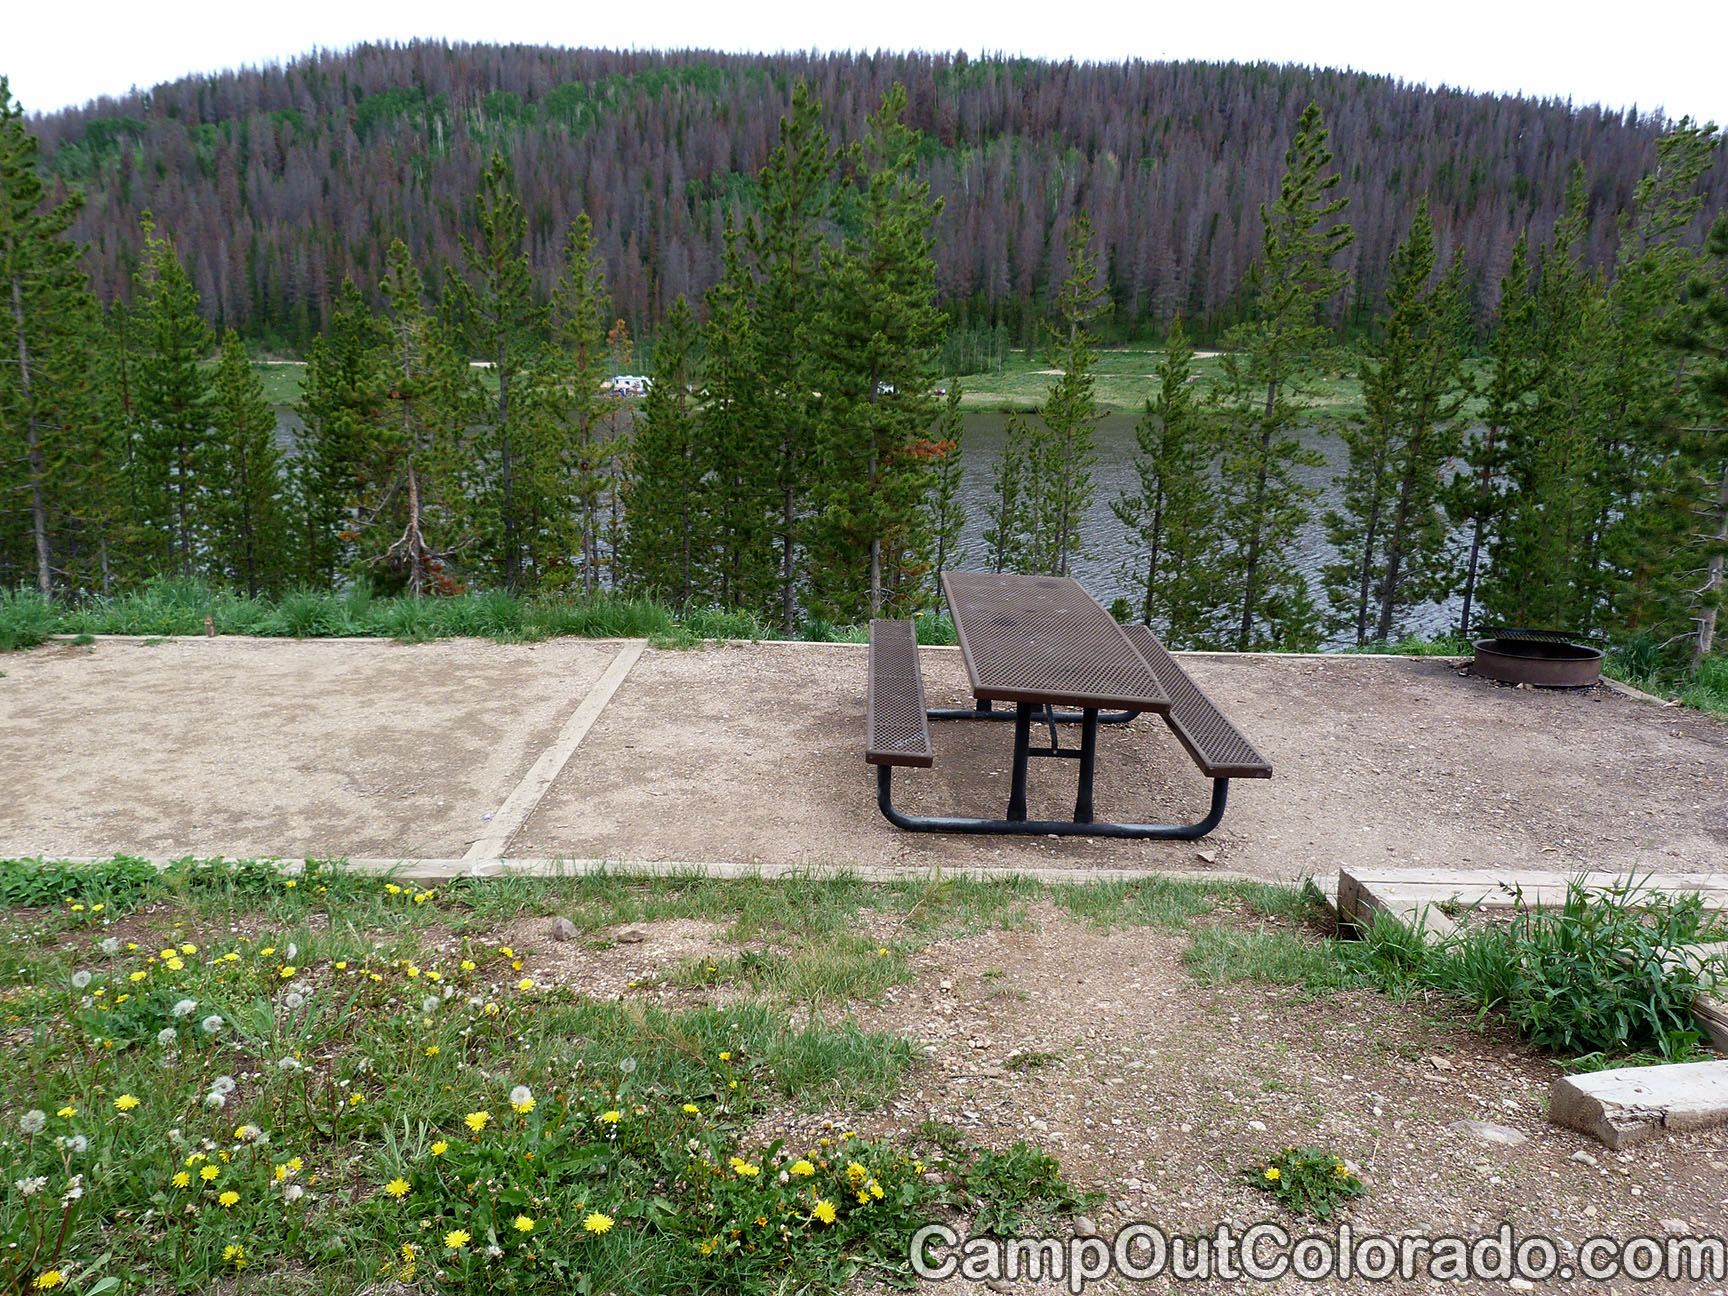 Campoutcolorado-north-michigan-reservoir-campground-windy-camping